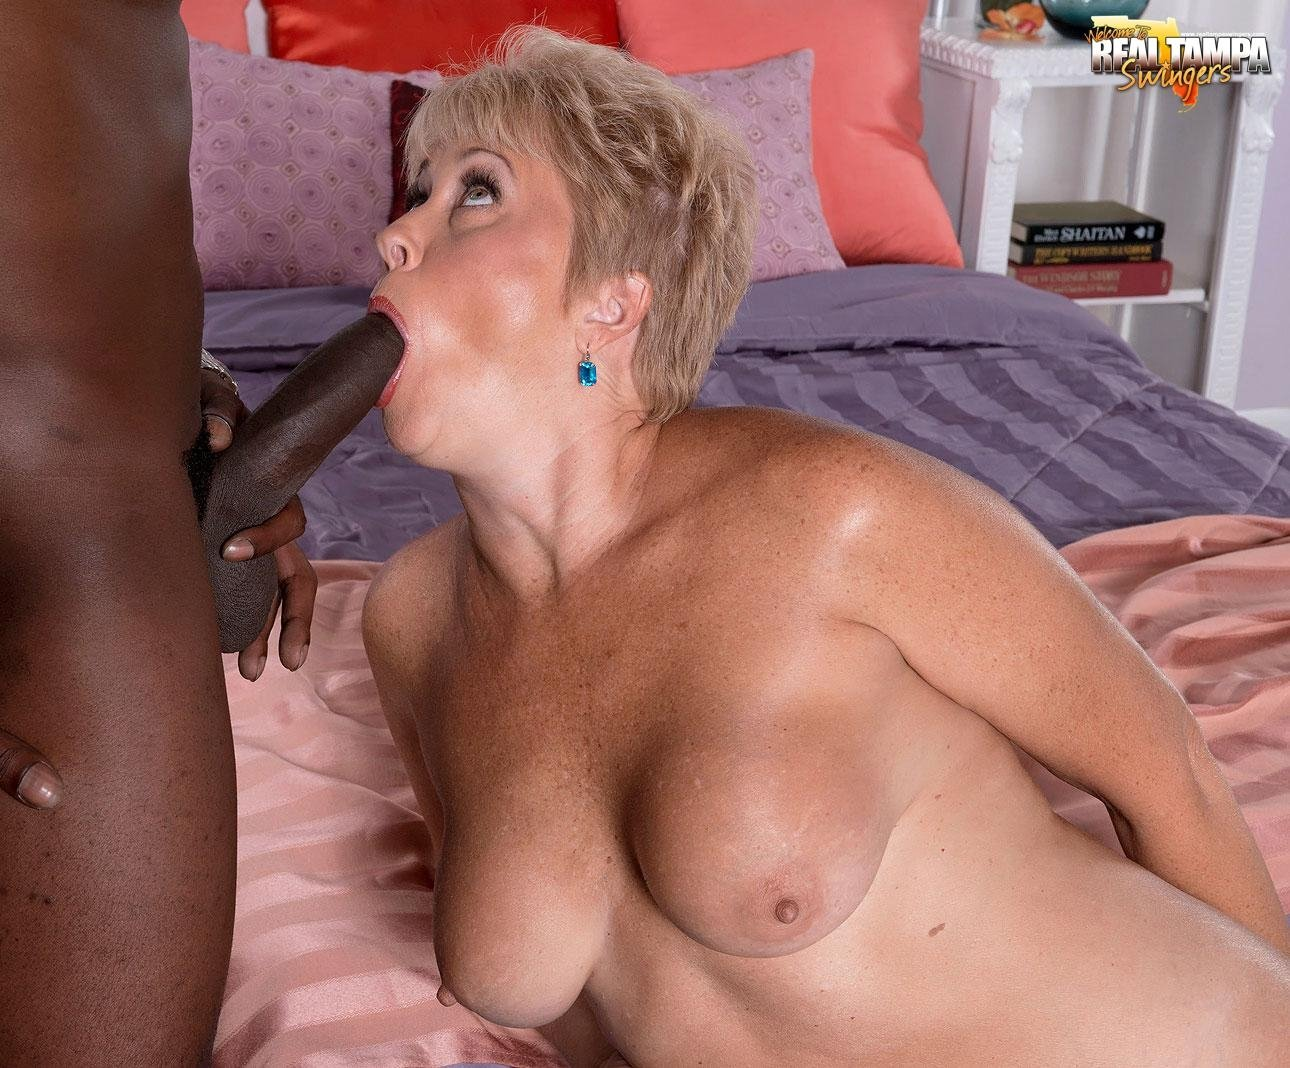 super hot blonde masturbating